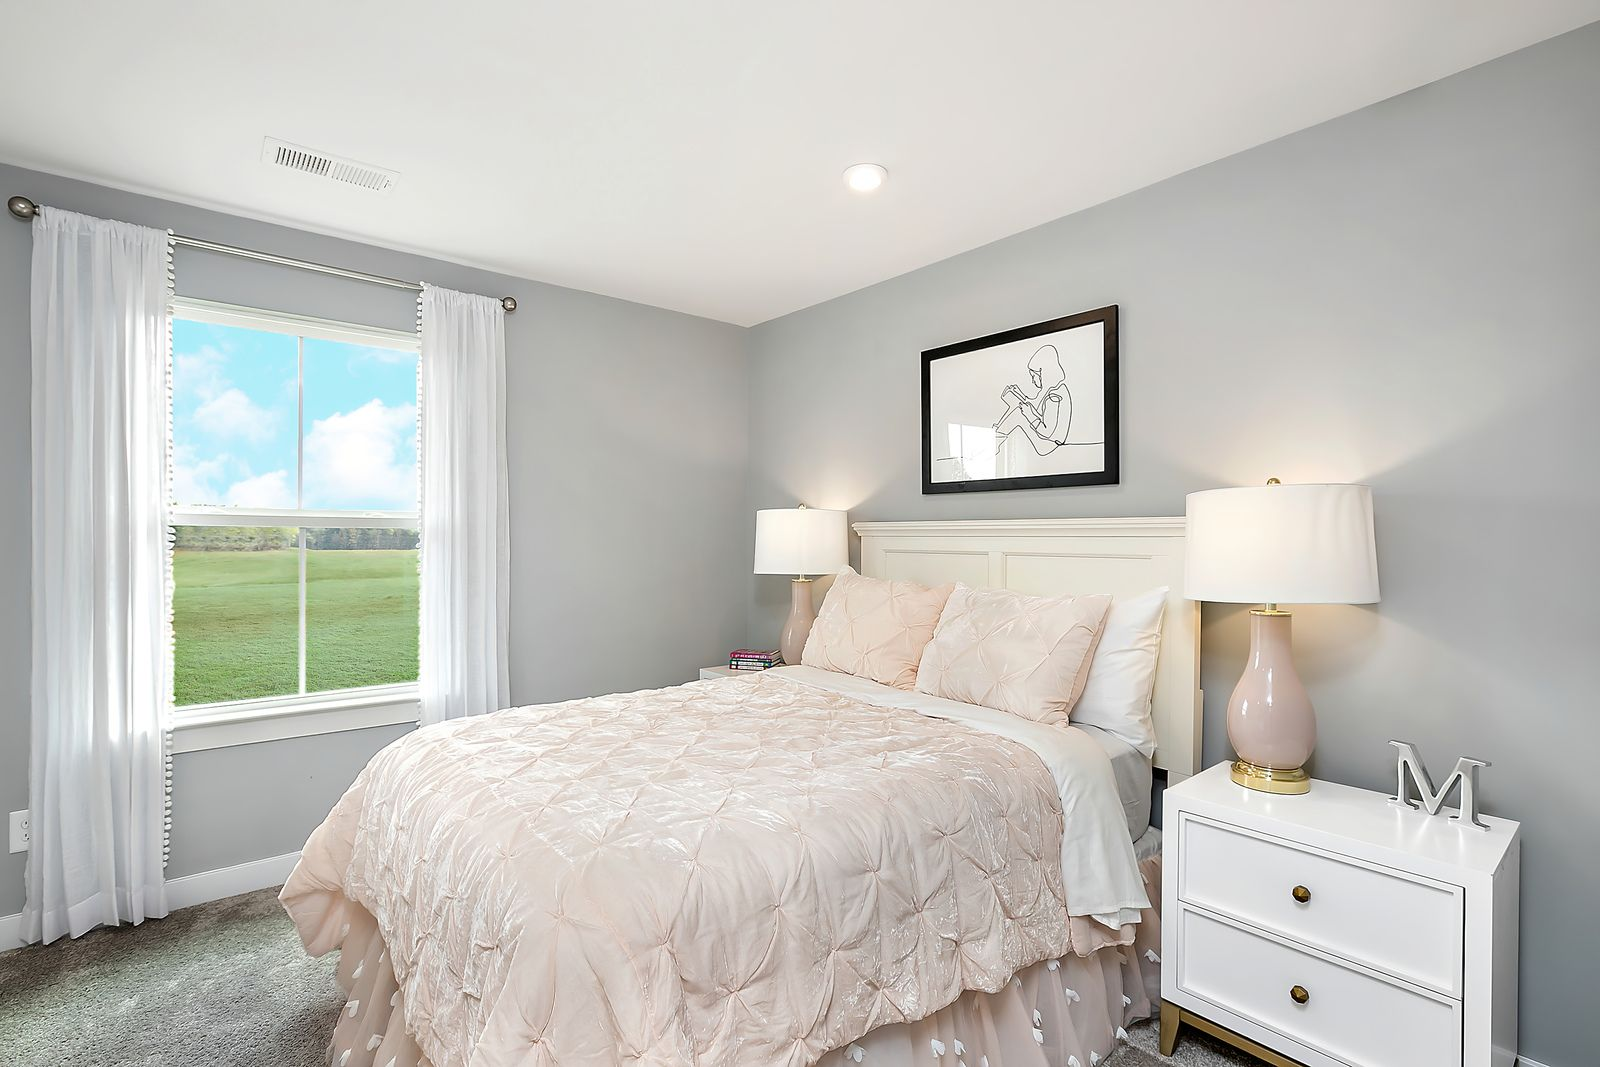 Bedroom featured in the Bramante Ranch Slab - Basement Available By Ryan Homes in Chicago, IL